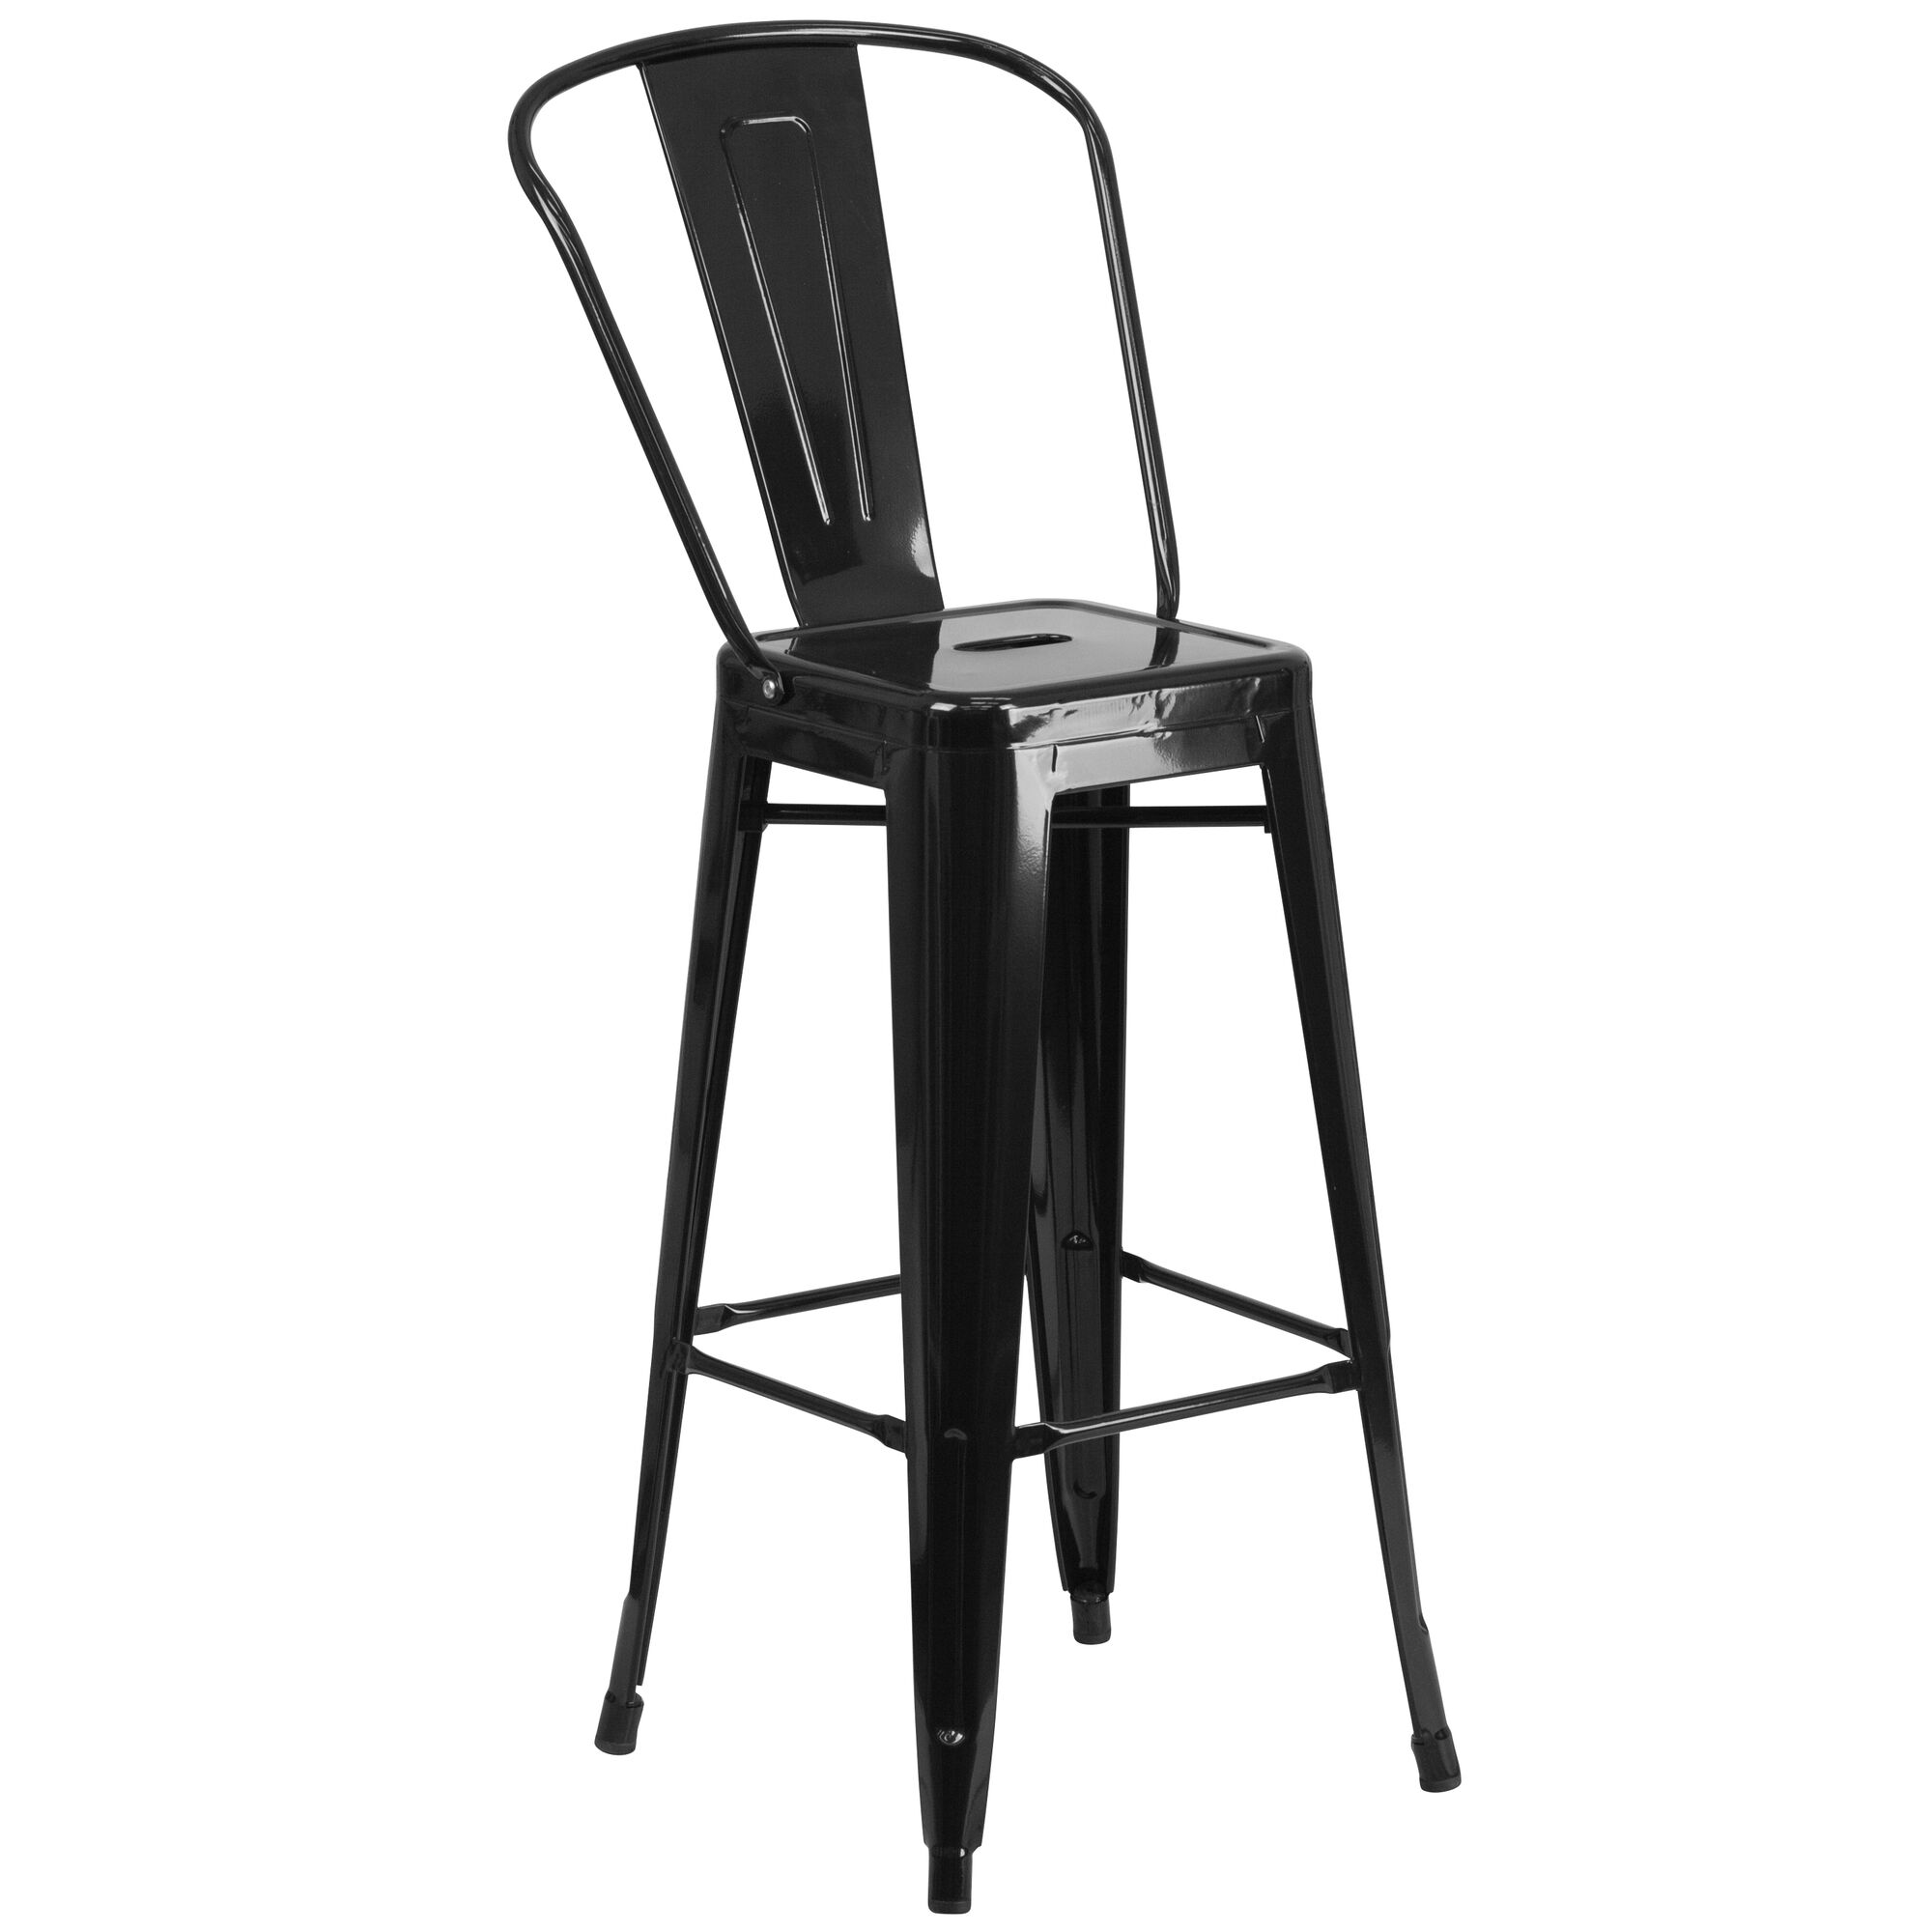 black stools stool for walmart seat design padded bar ebay used enchanting sale back with cheap amusing